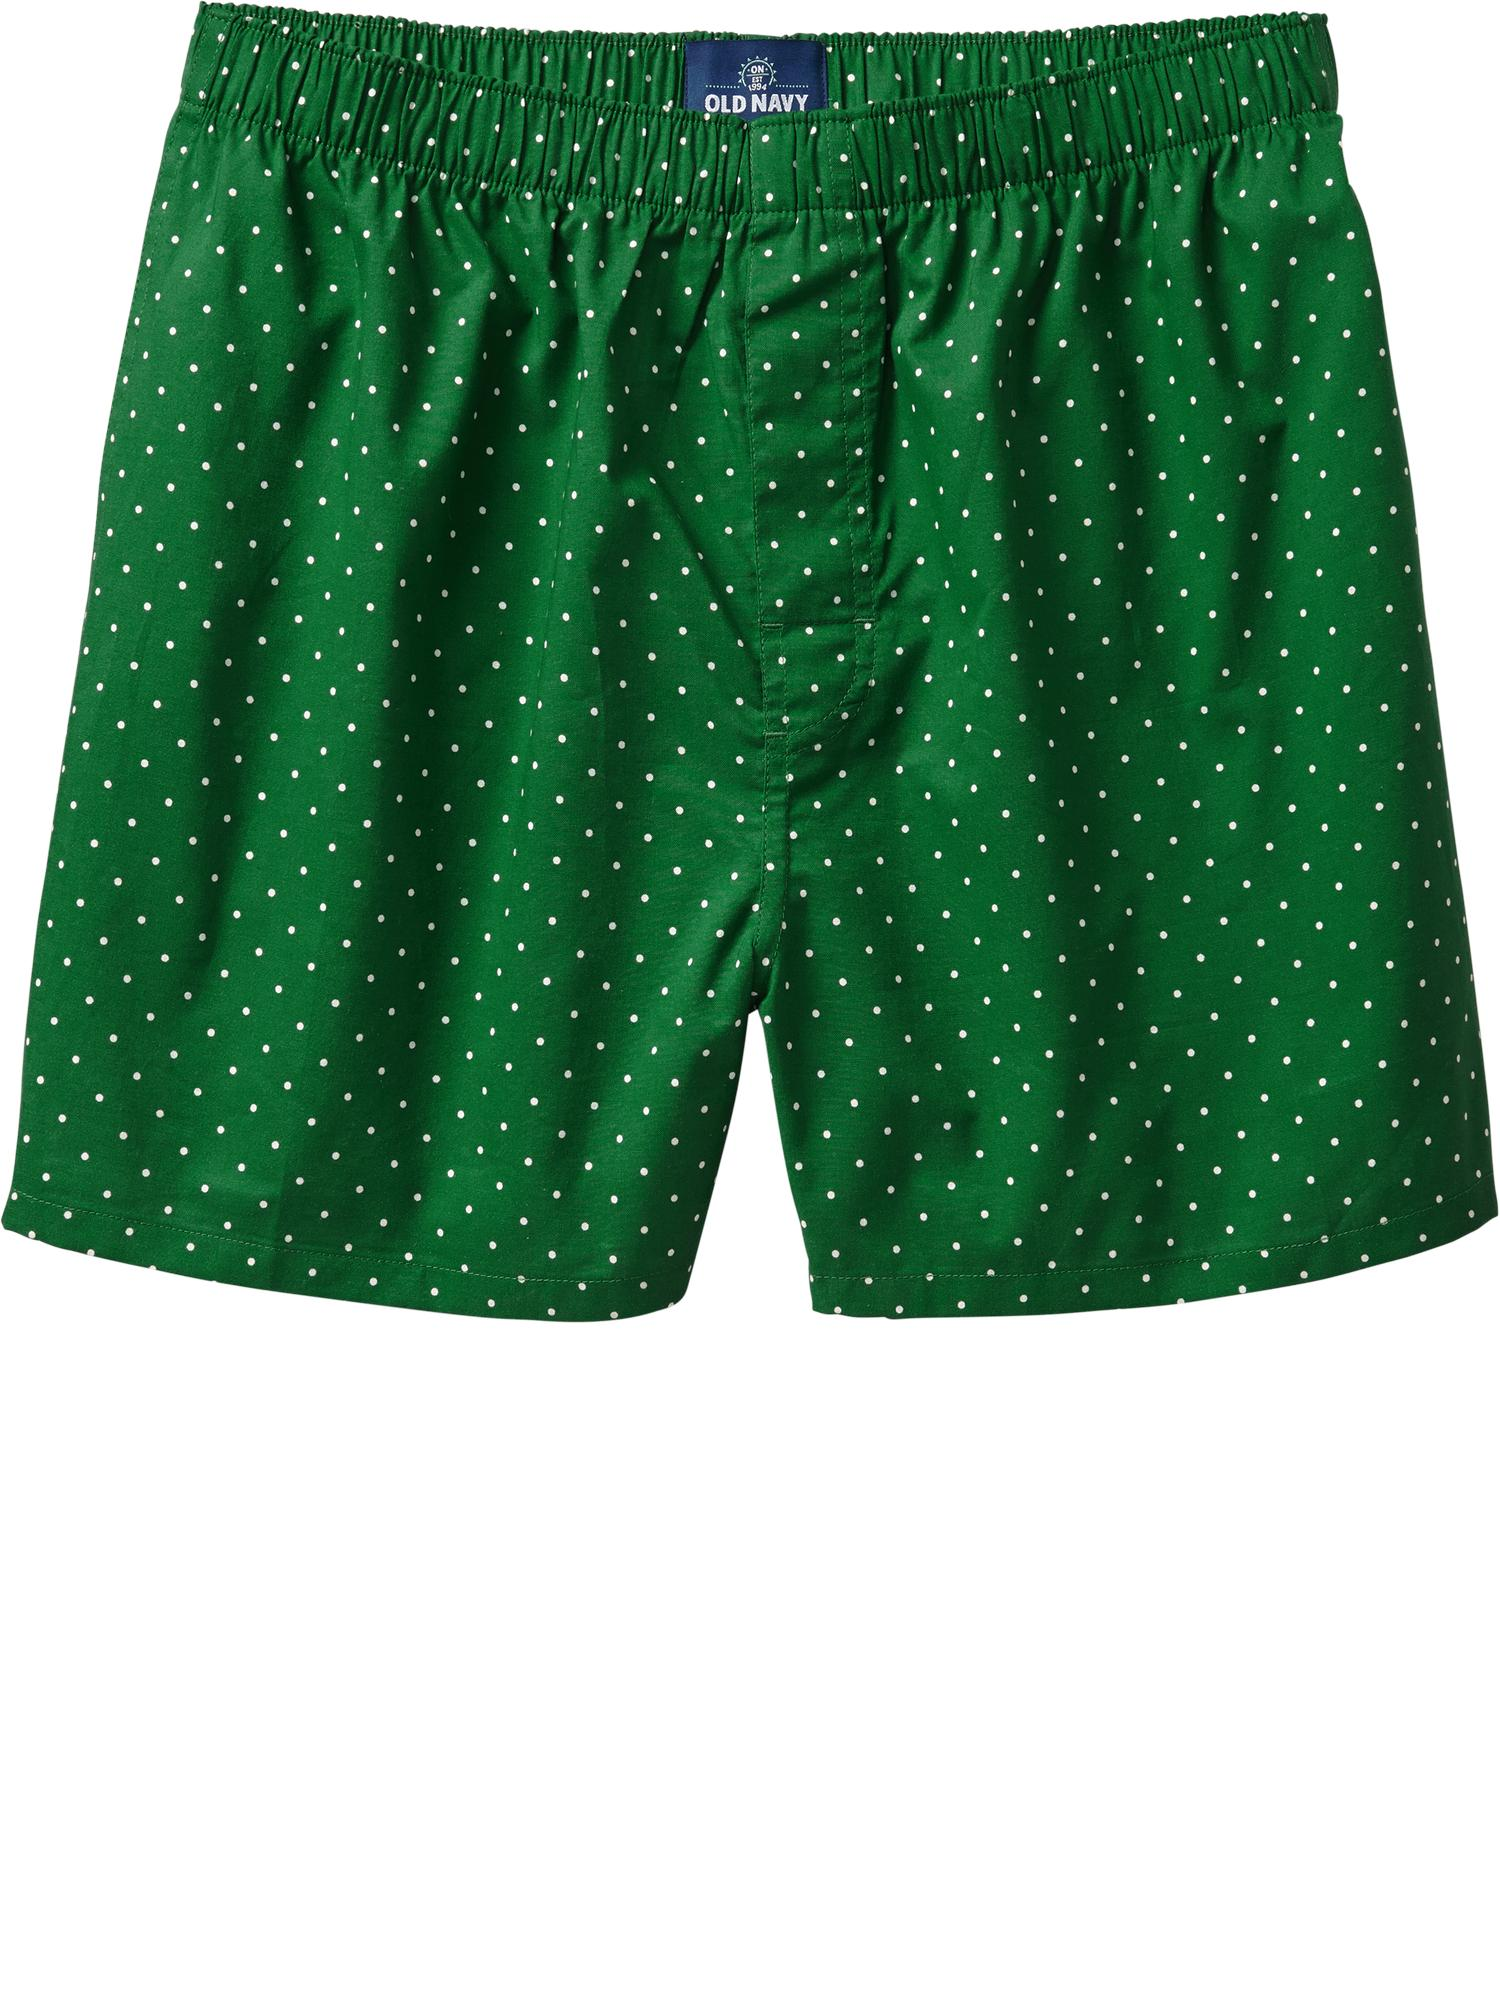 Old Navy Men's Printed Boxers - Green dots